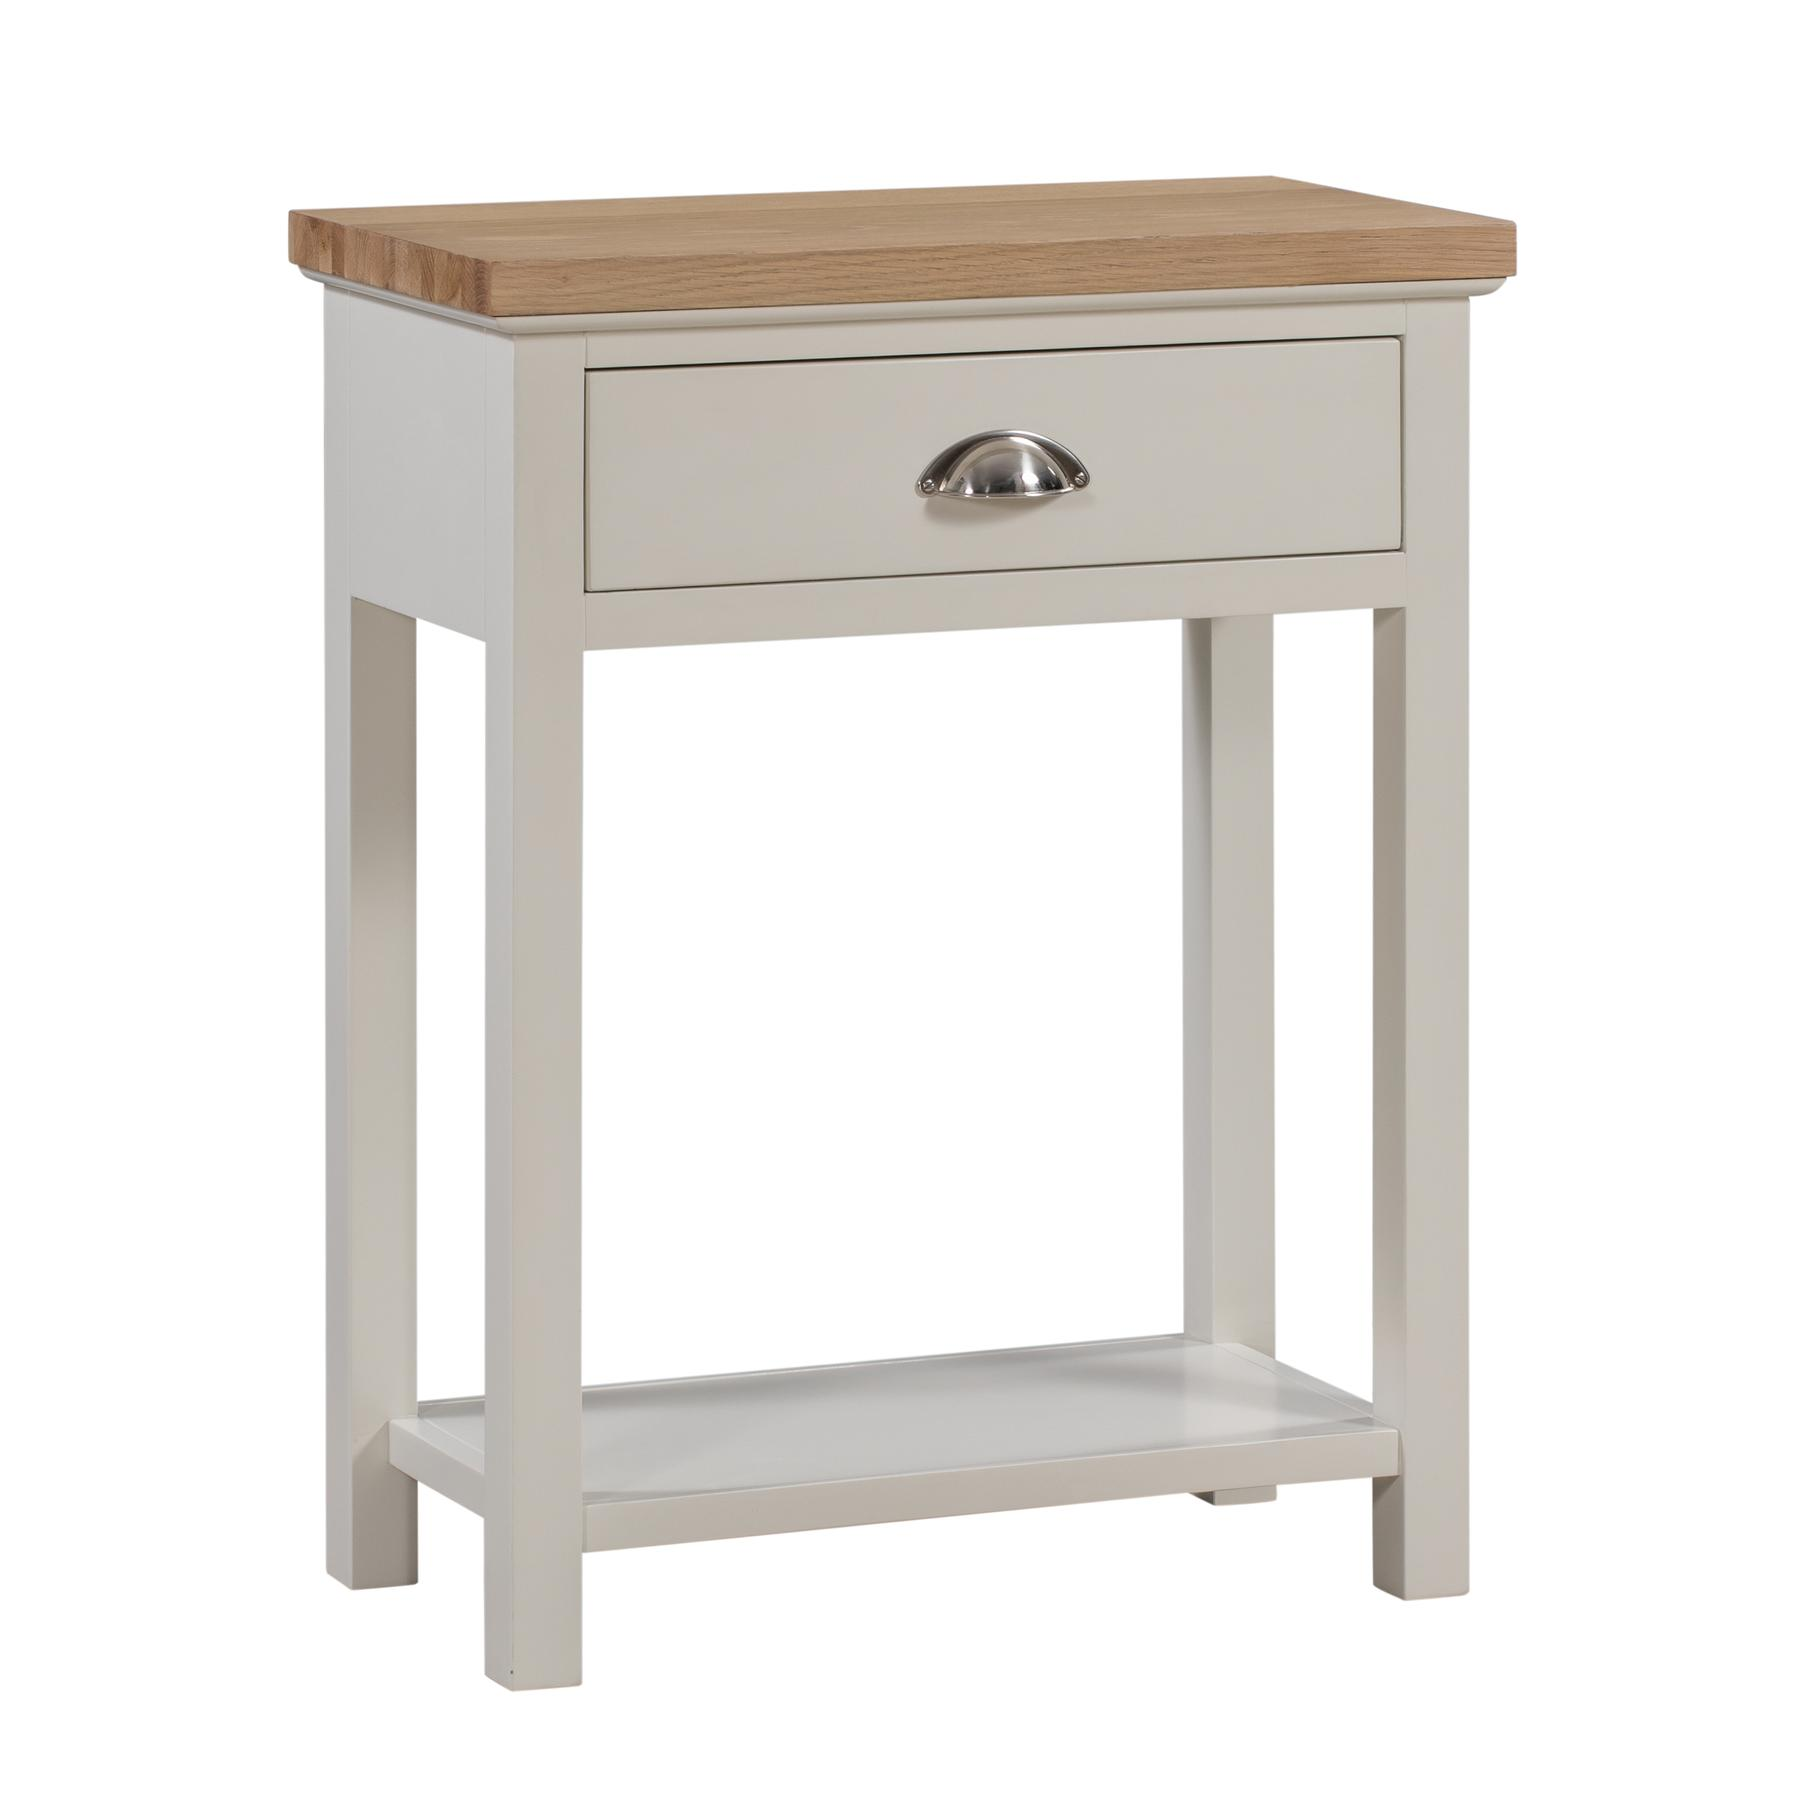 Ripley Oak Collection One Drawer Console Table